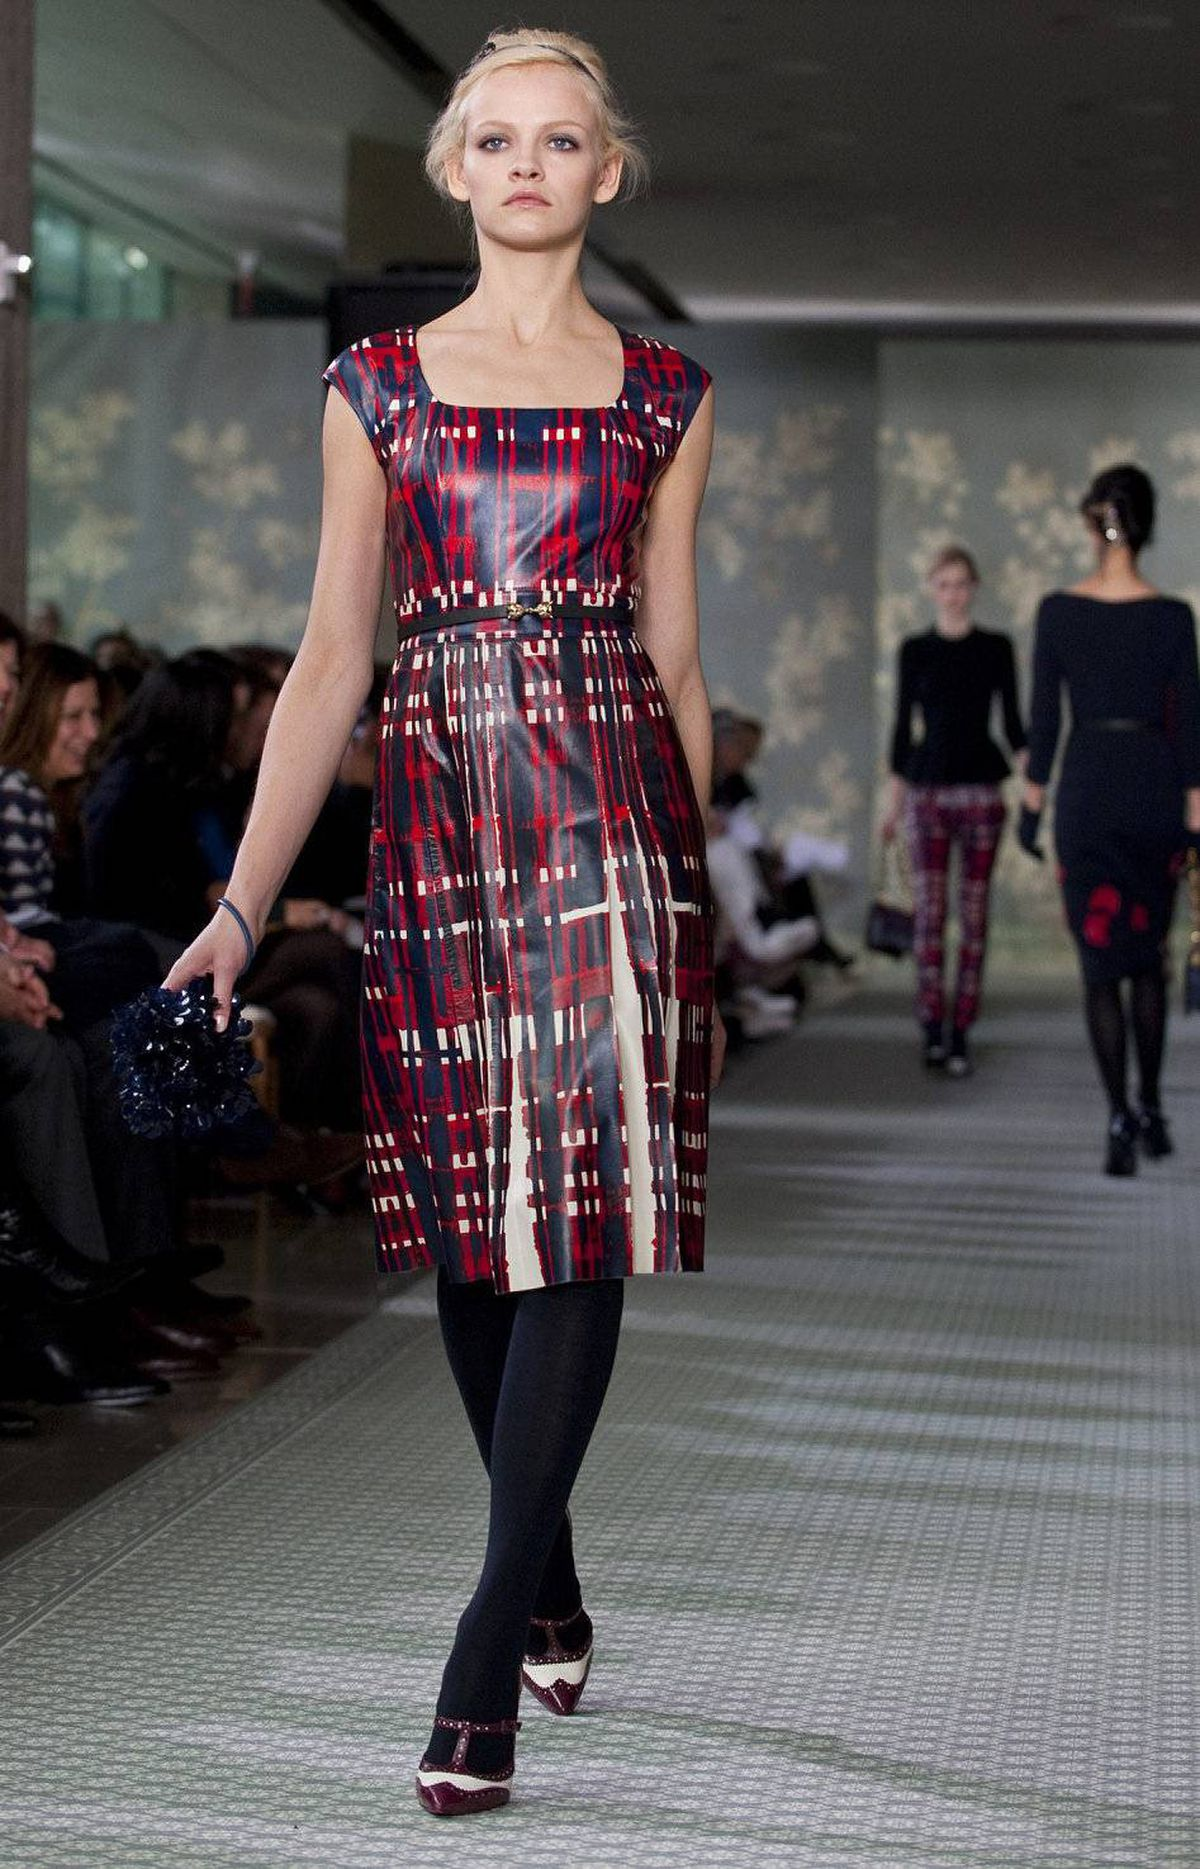 This was a strong showing for Burch – an inspired mix of looks for lunching ladies (pretty blouses and bouclé jackets) to knits sprouting plastic flowers and leather painted with graphic grid pattern.